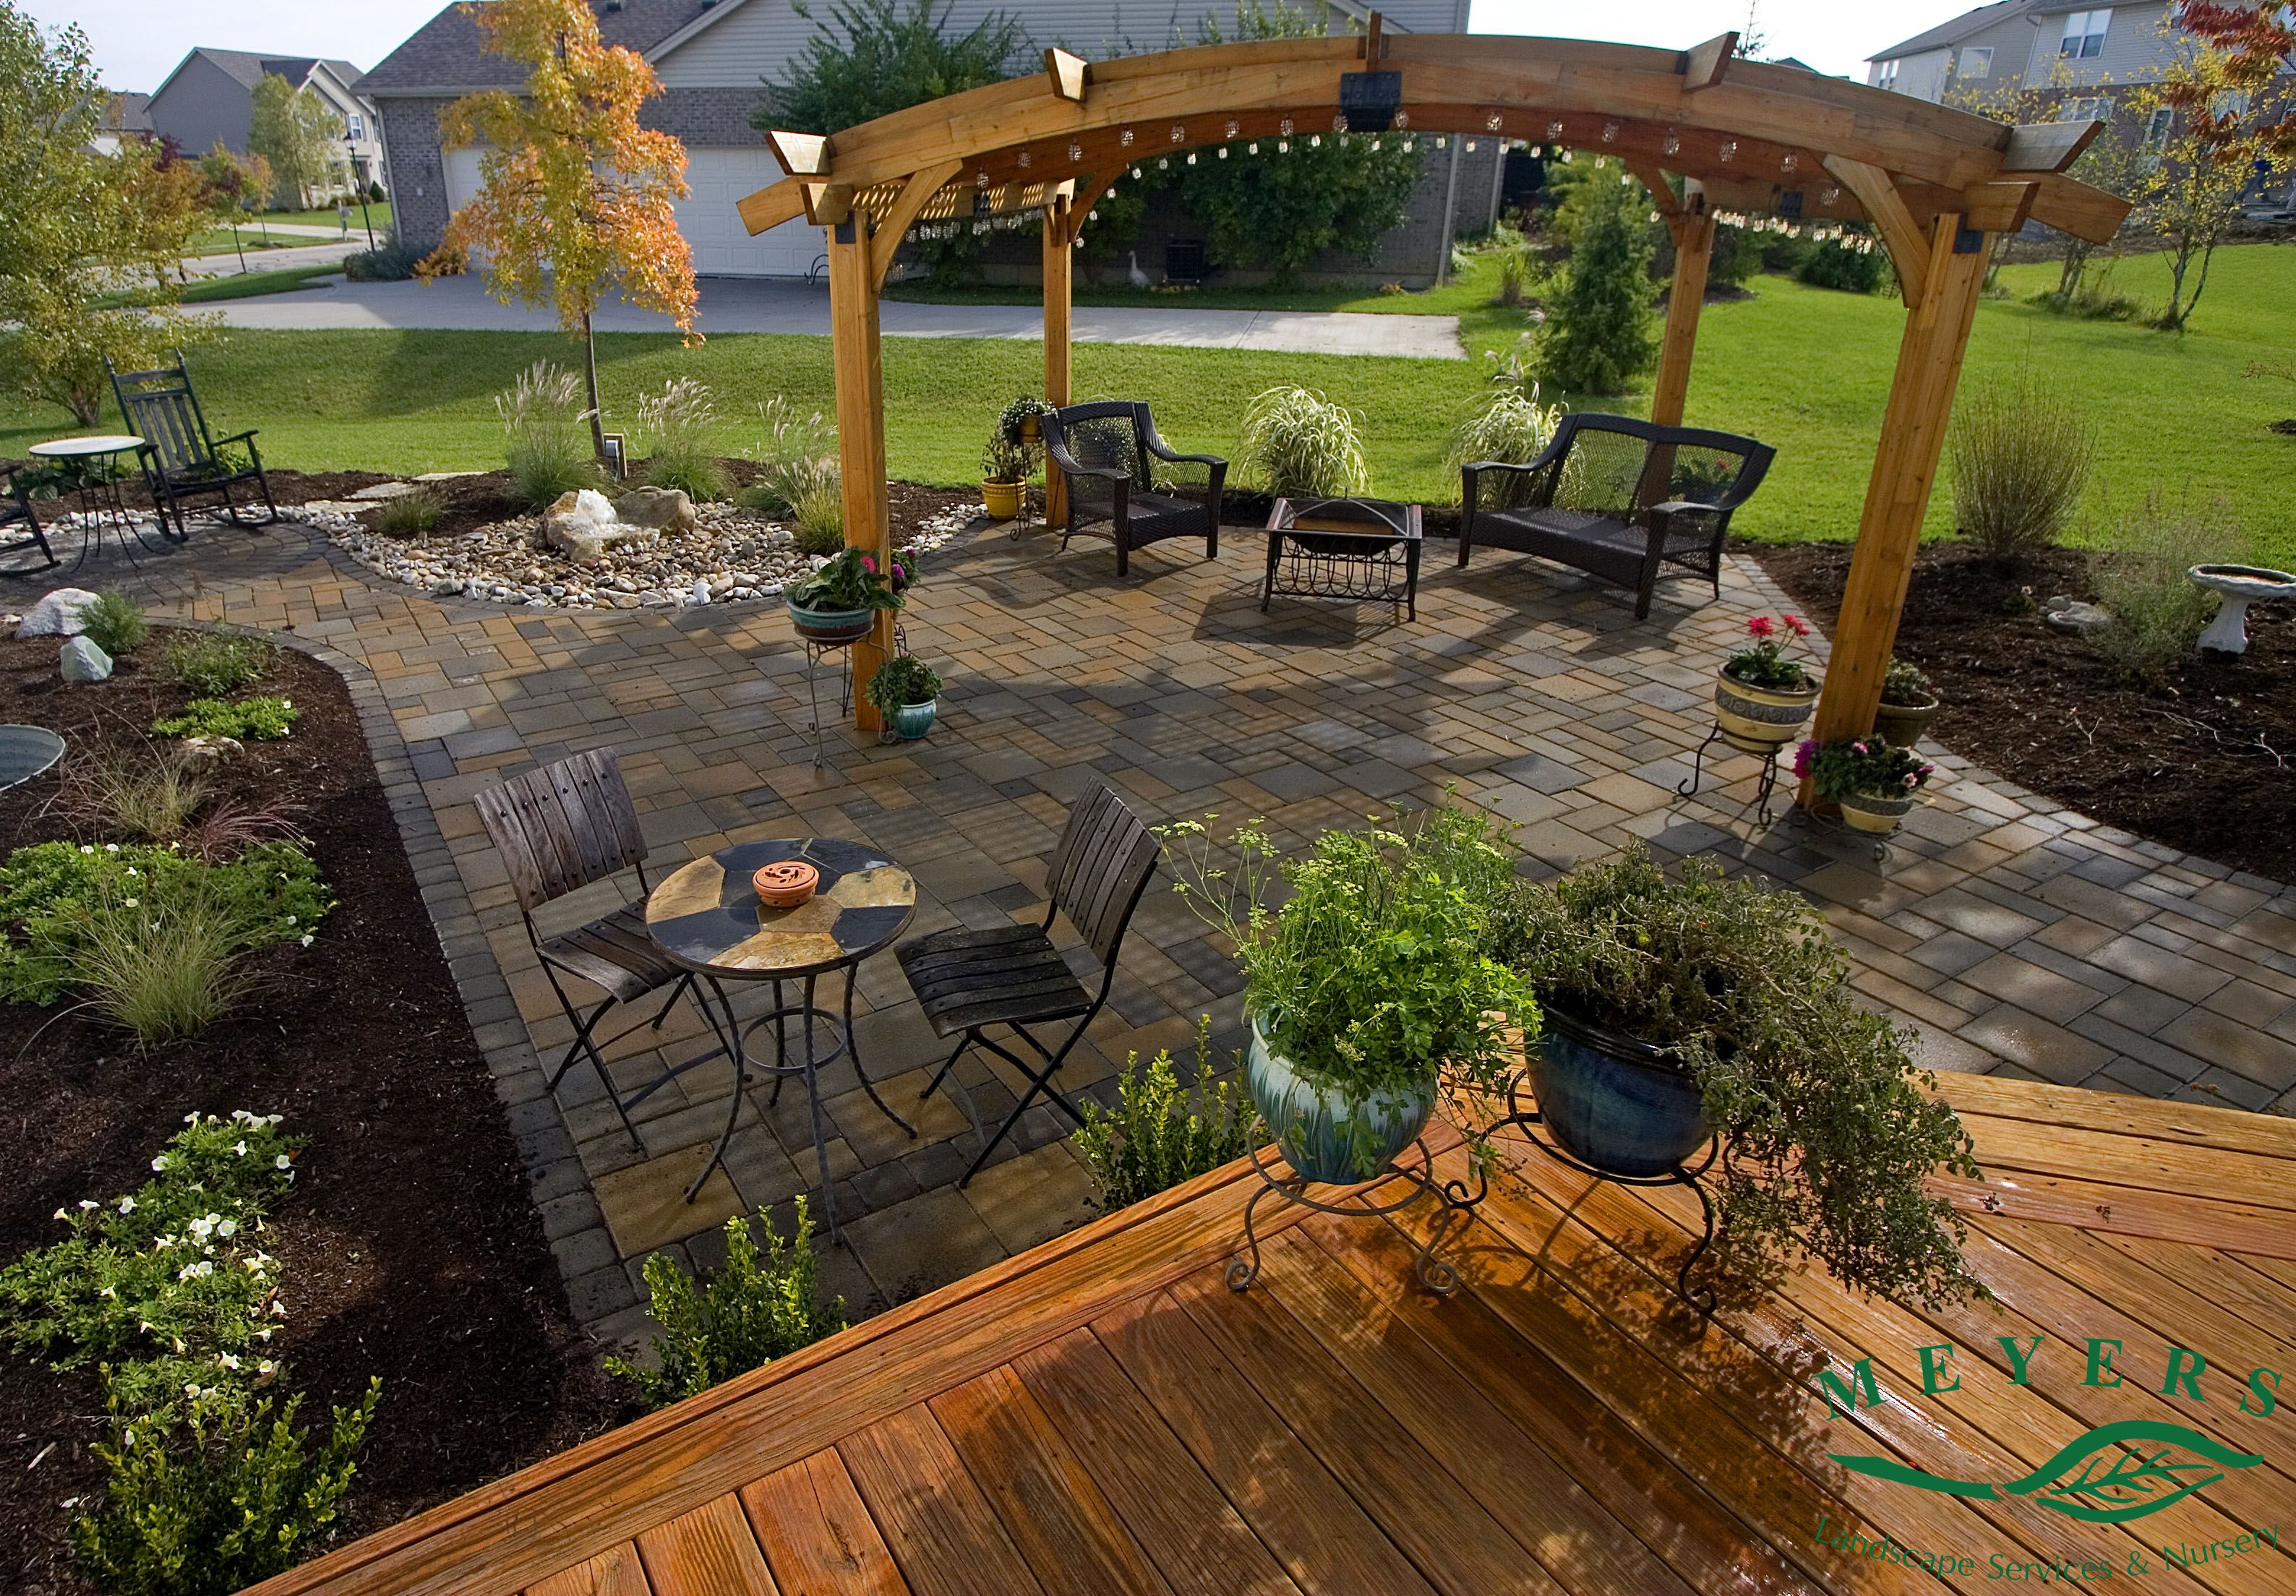 Meyers Landscape Custom paver patio with deck and lighted ... on Red Paver Patio Ideas id=46978